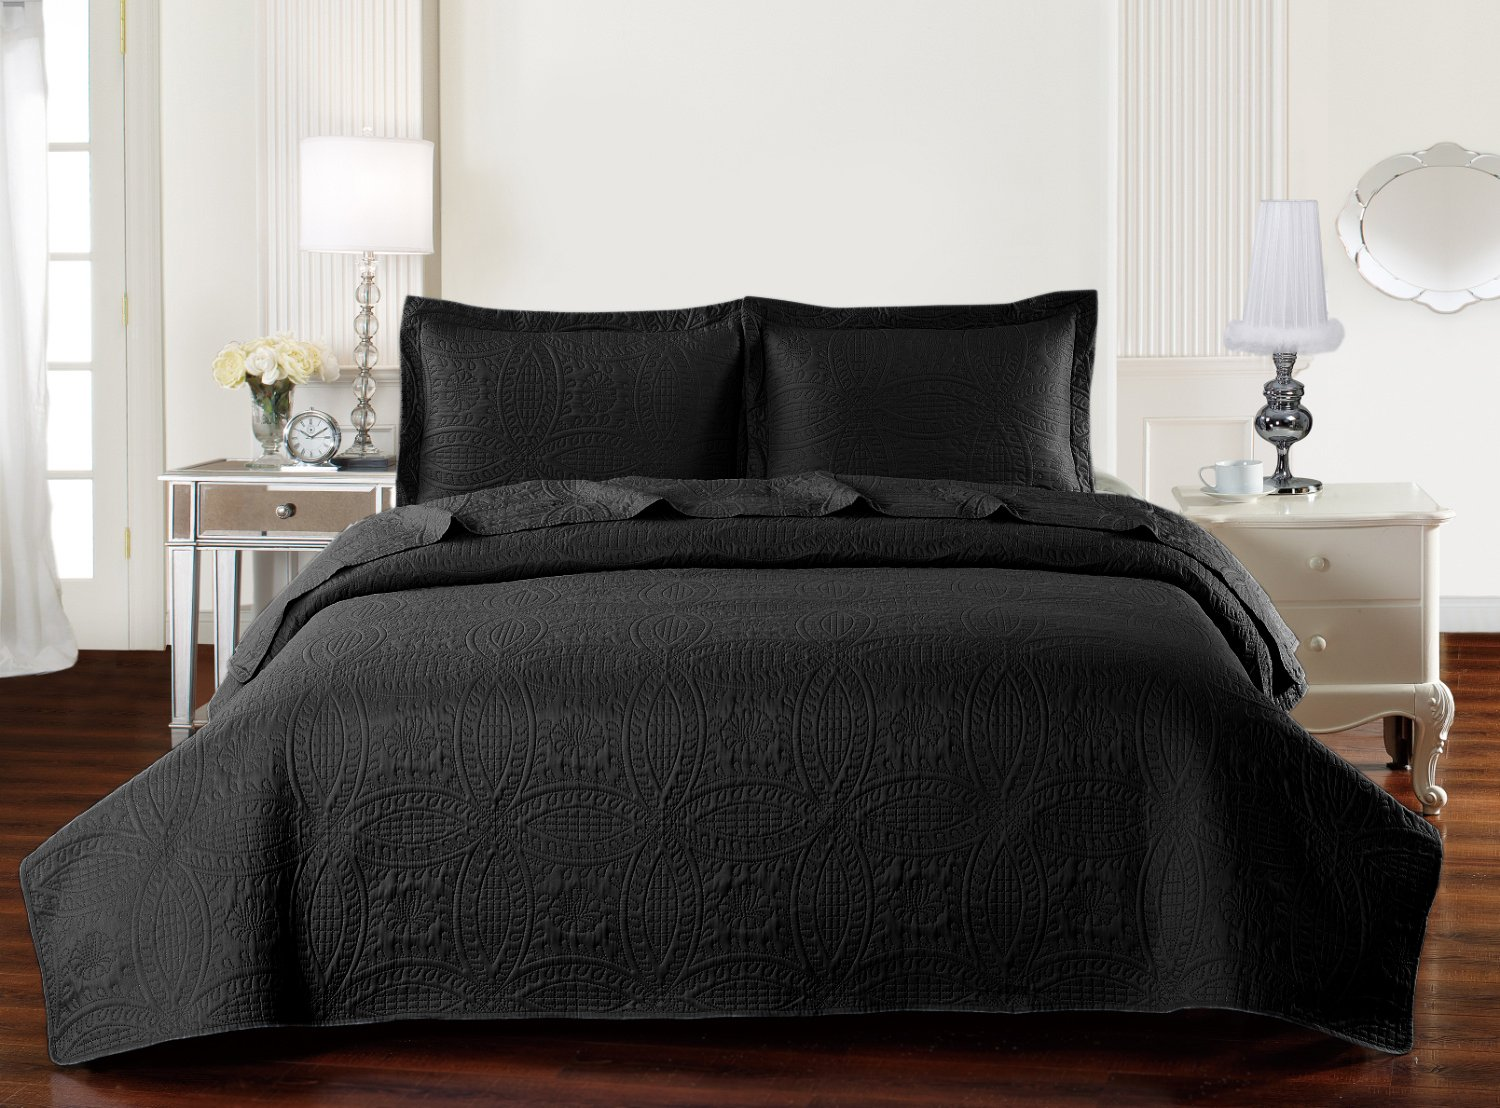 Mellanni Bedspread Coverlet Set Black - BEST QUALITY Comforter Oversized 3-Piece Quilt Set (Full/Queen, Black